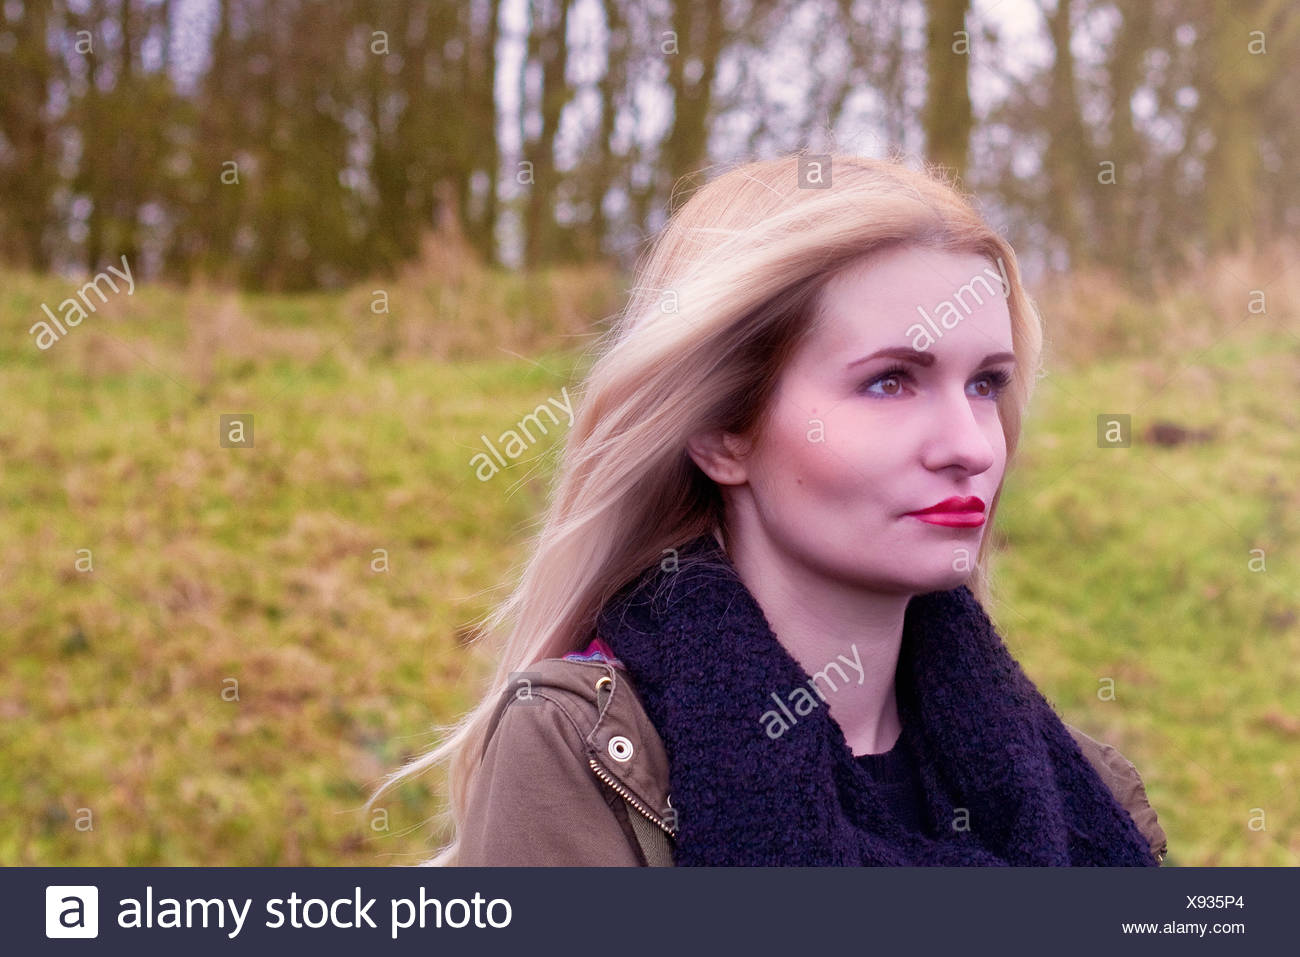 Portrait of sad young woman outdoors - Stock Image